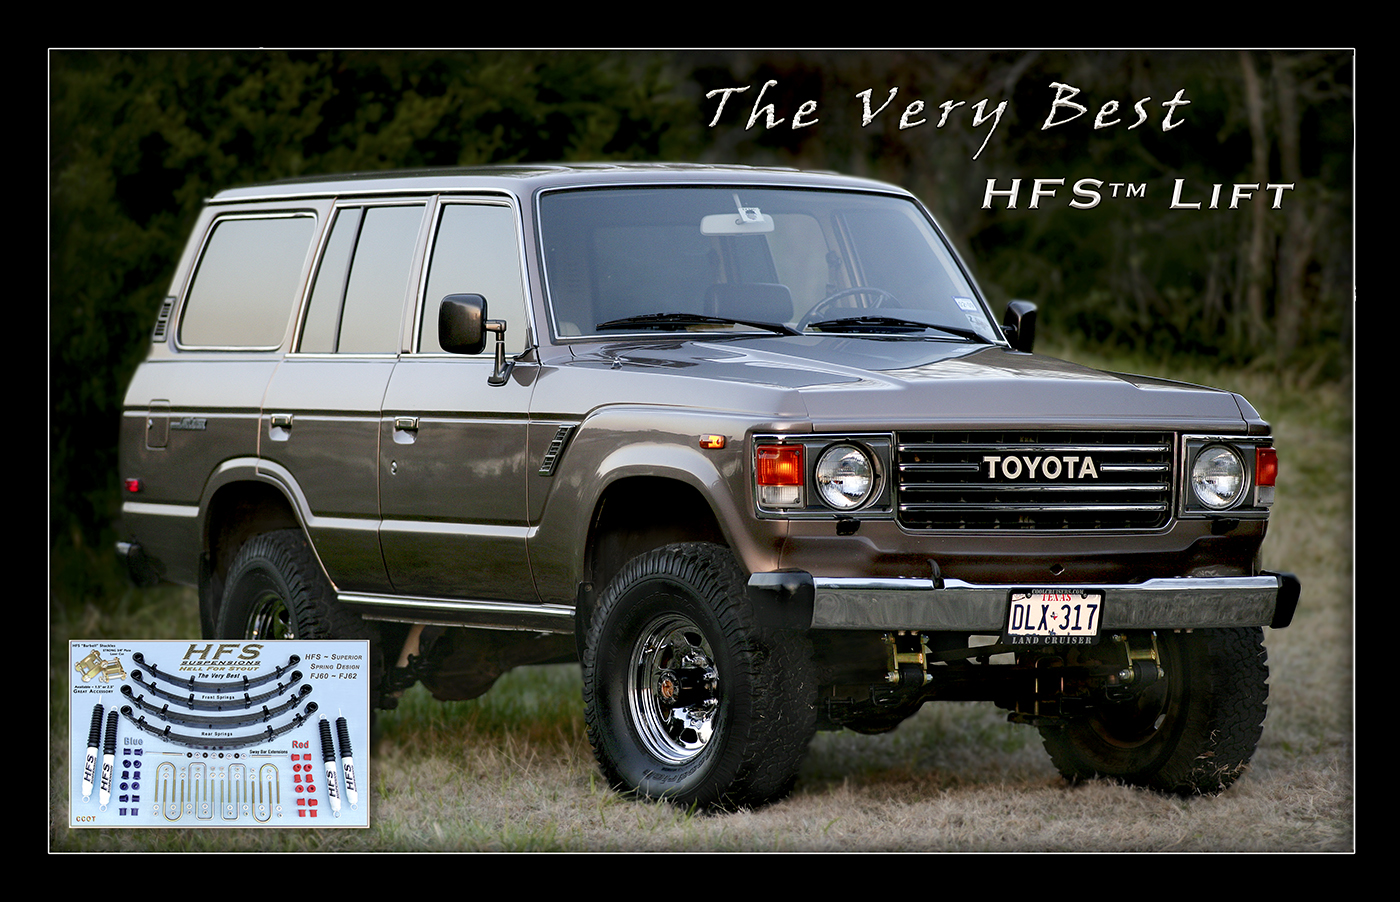 Hfs 25 Lift On 33 Tires Toyota Kits Kit Fj60 62